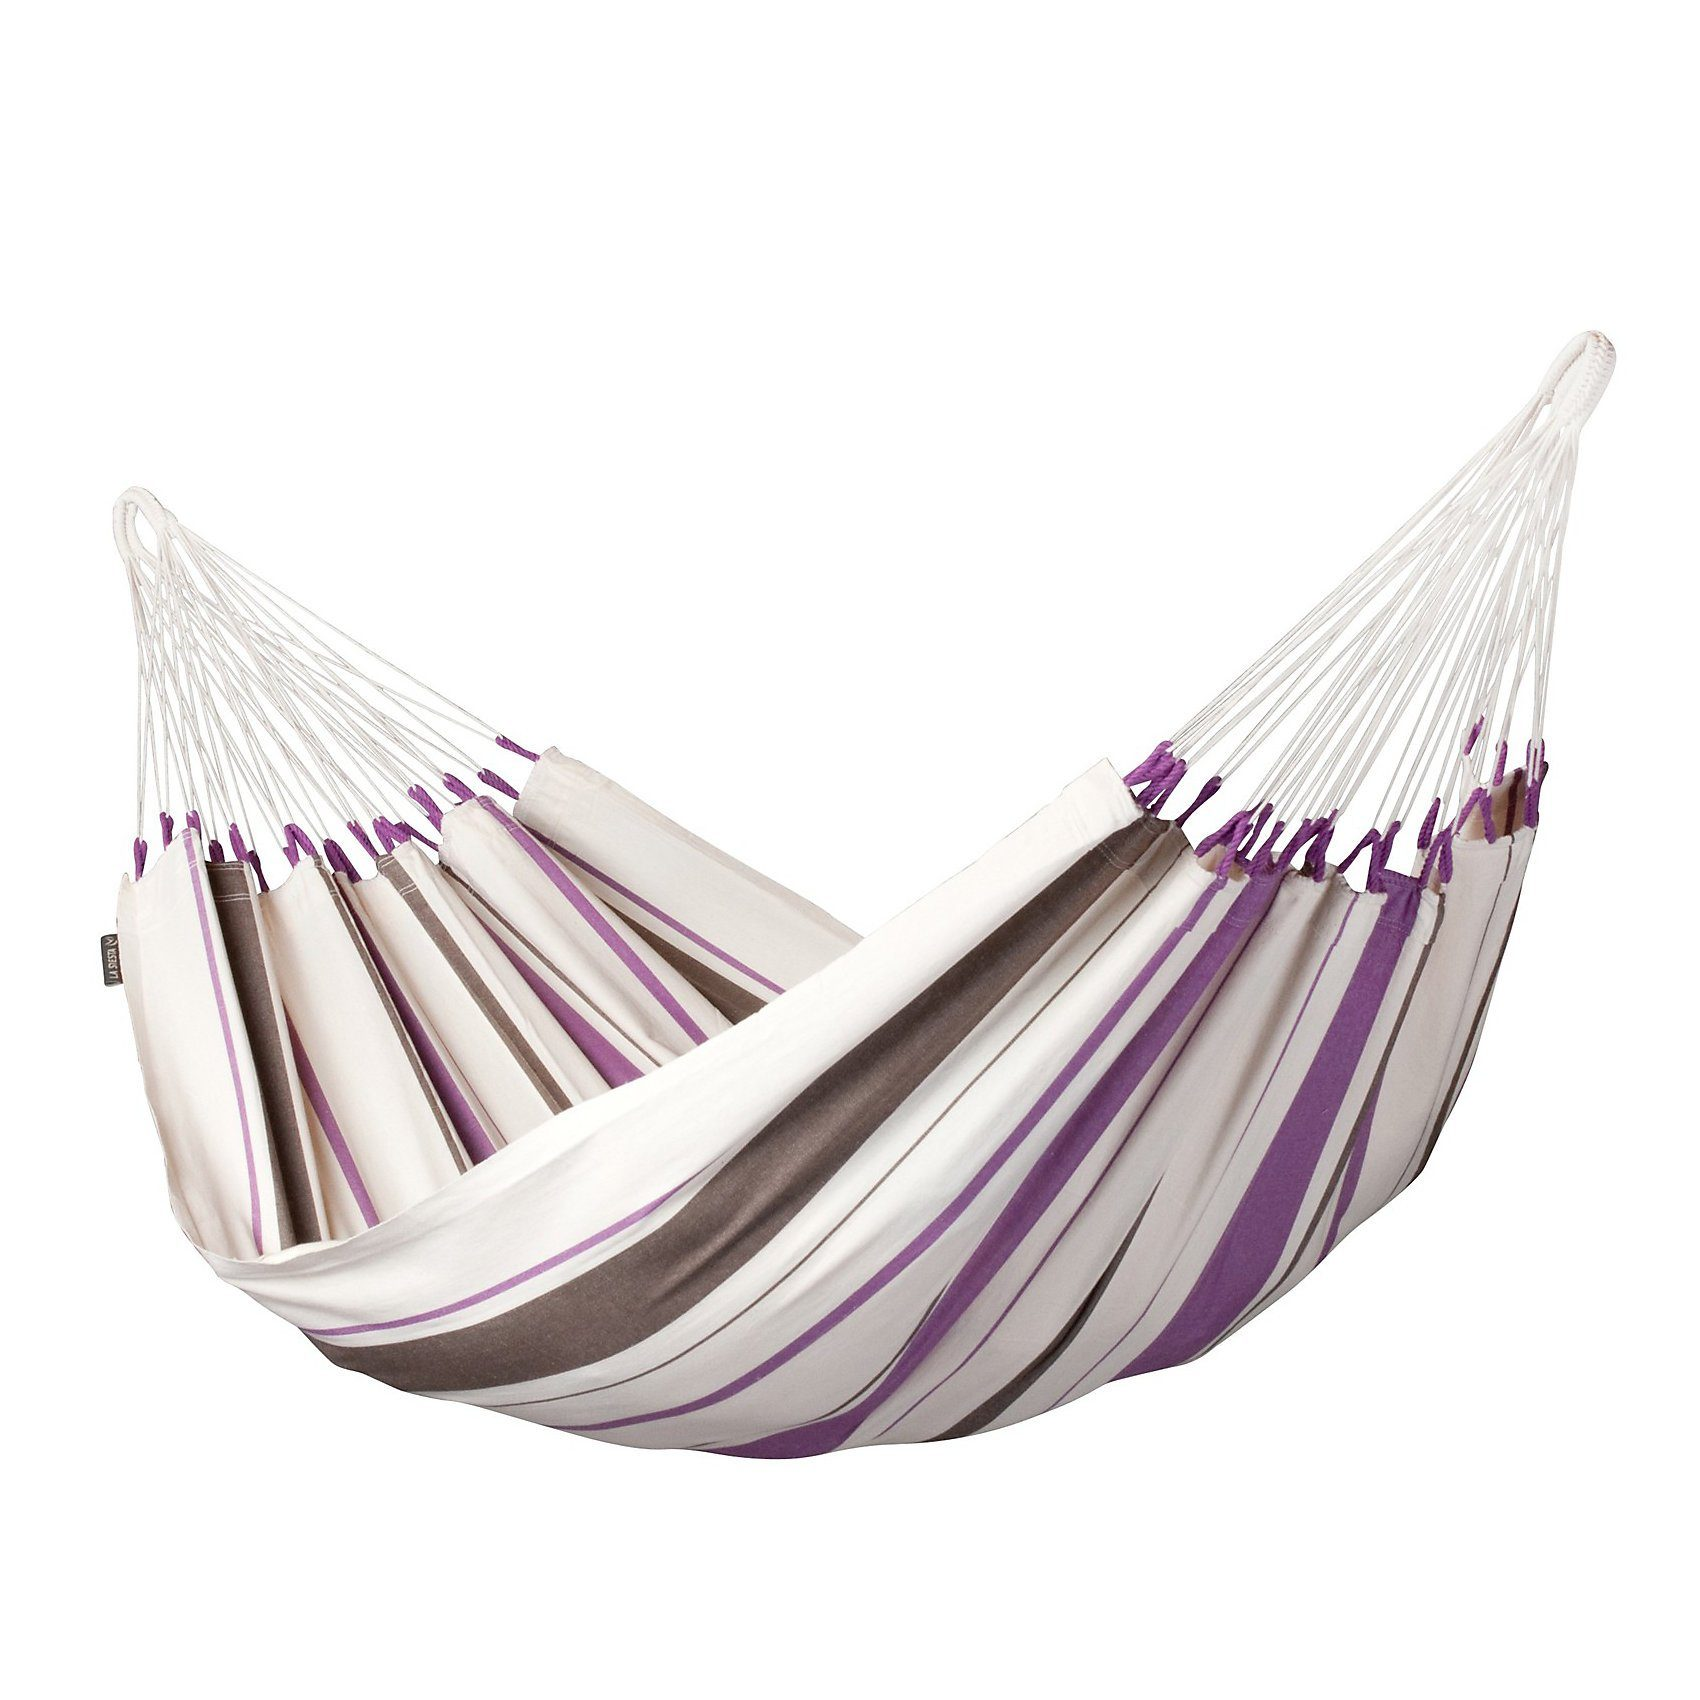 La Siesta Single-Hängematte CARIBEÑA purple